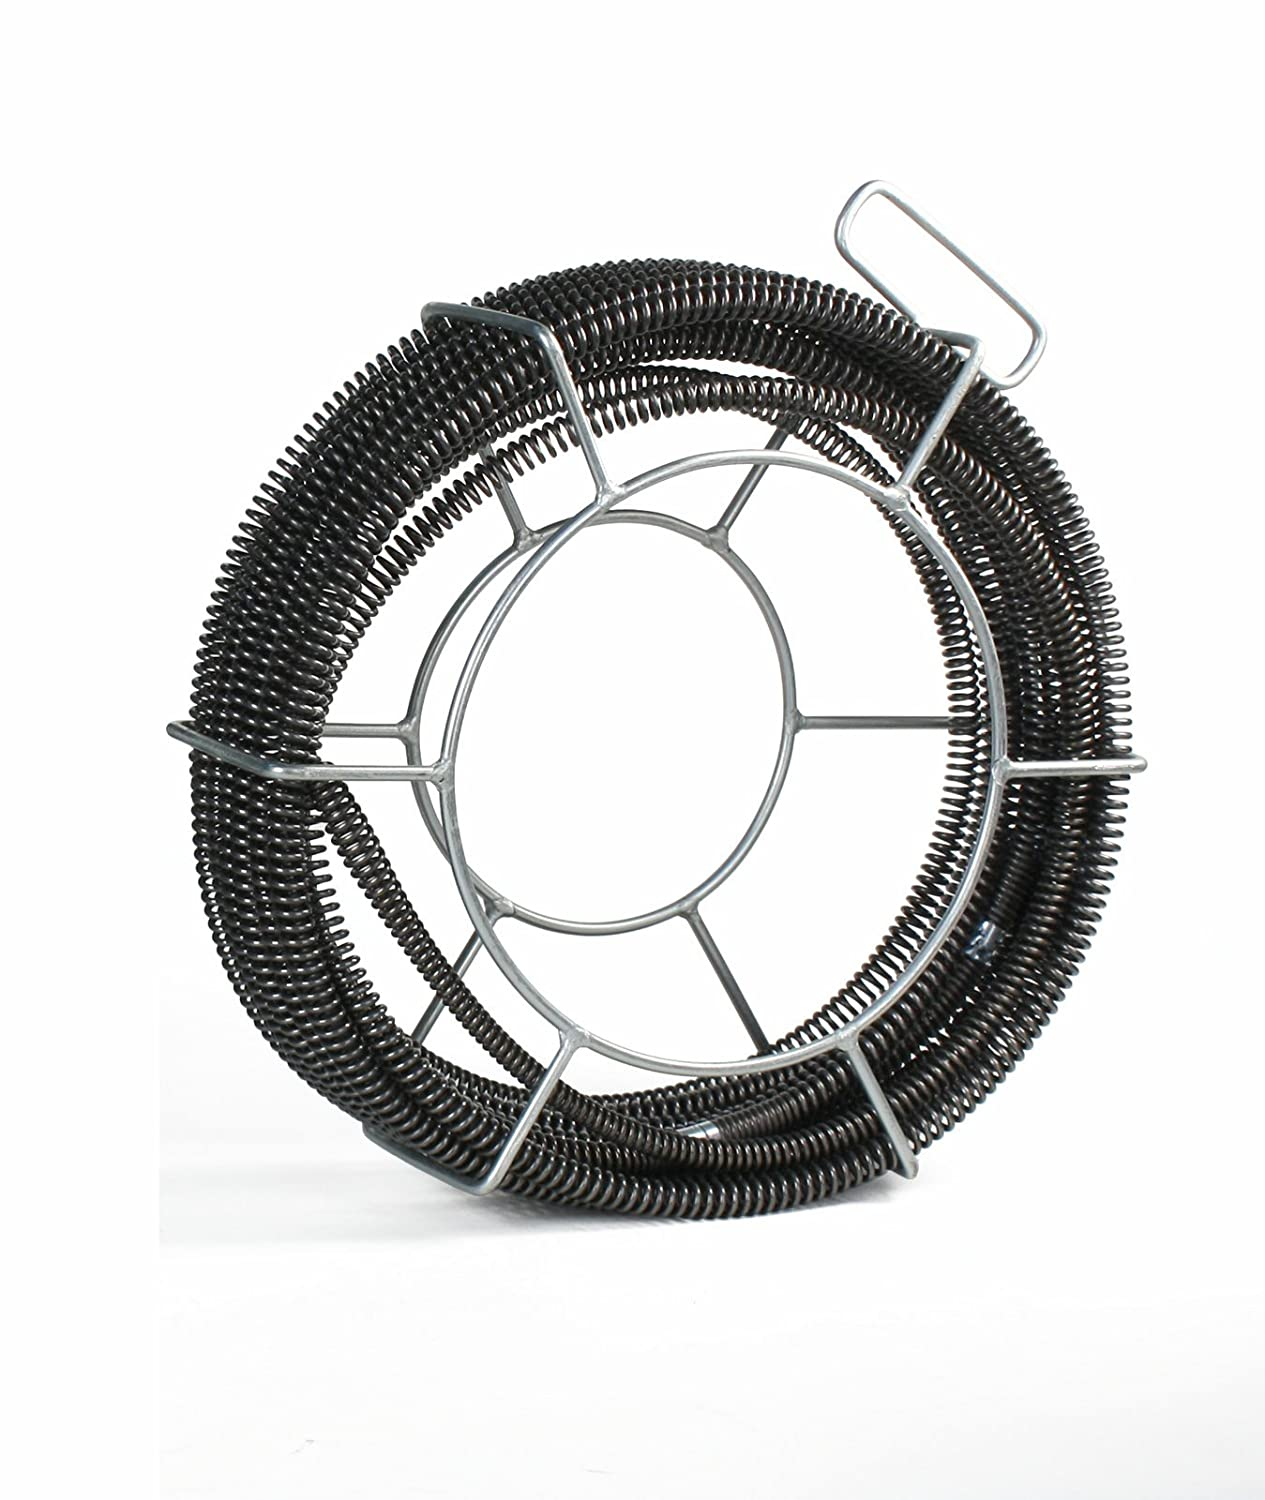 SDT C10 Sectional Drain Cable 7/8 x 45' fits RIDGID K1500 with A8 Carrier Steel Dragon Tools